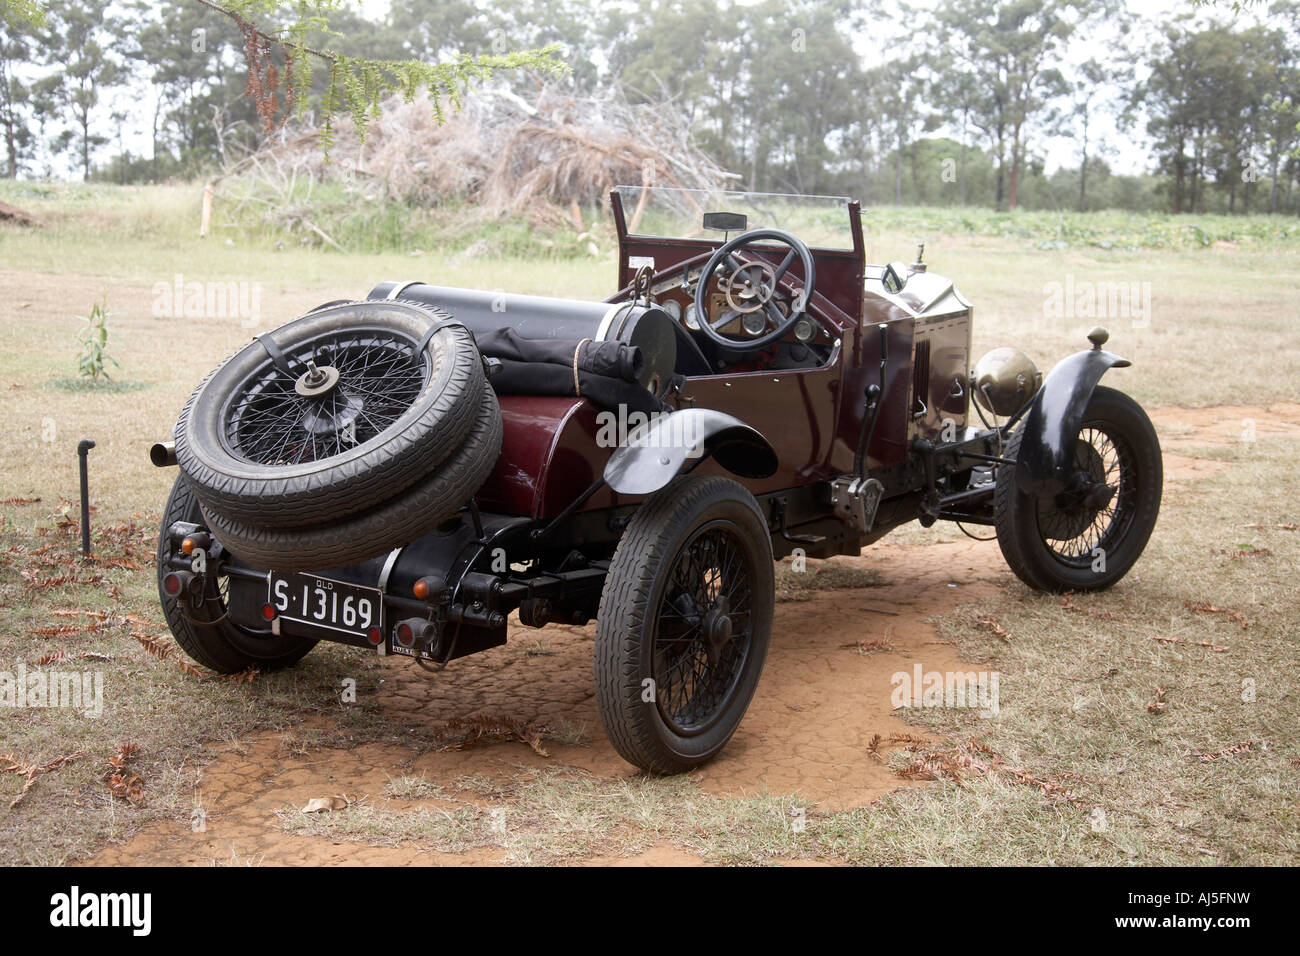 Old Vintage Vauxhall Motor Car On Dirt Track Outdoors In